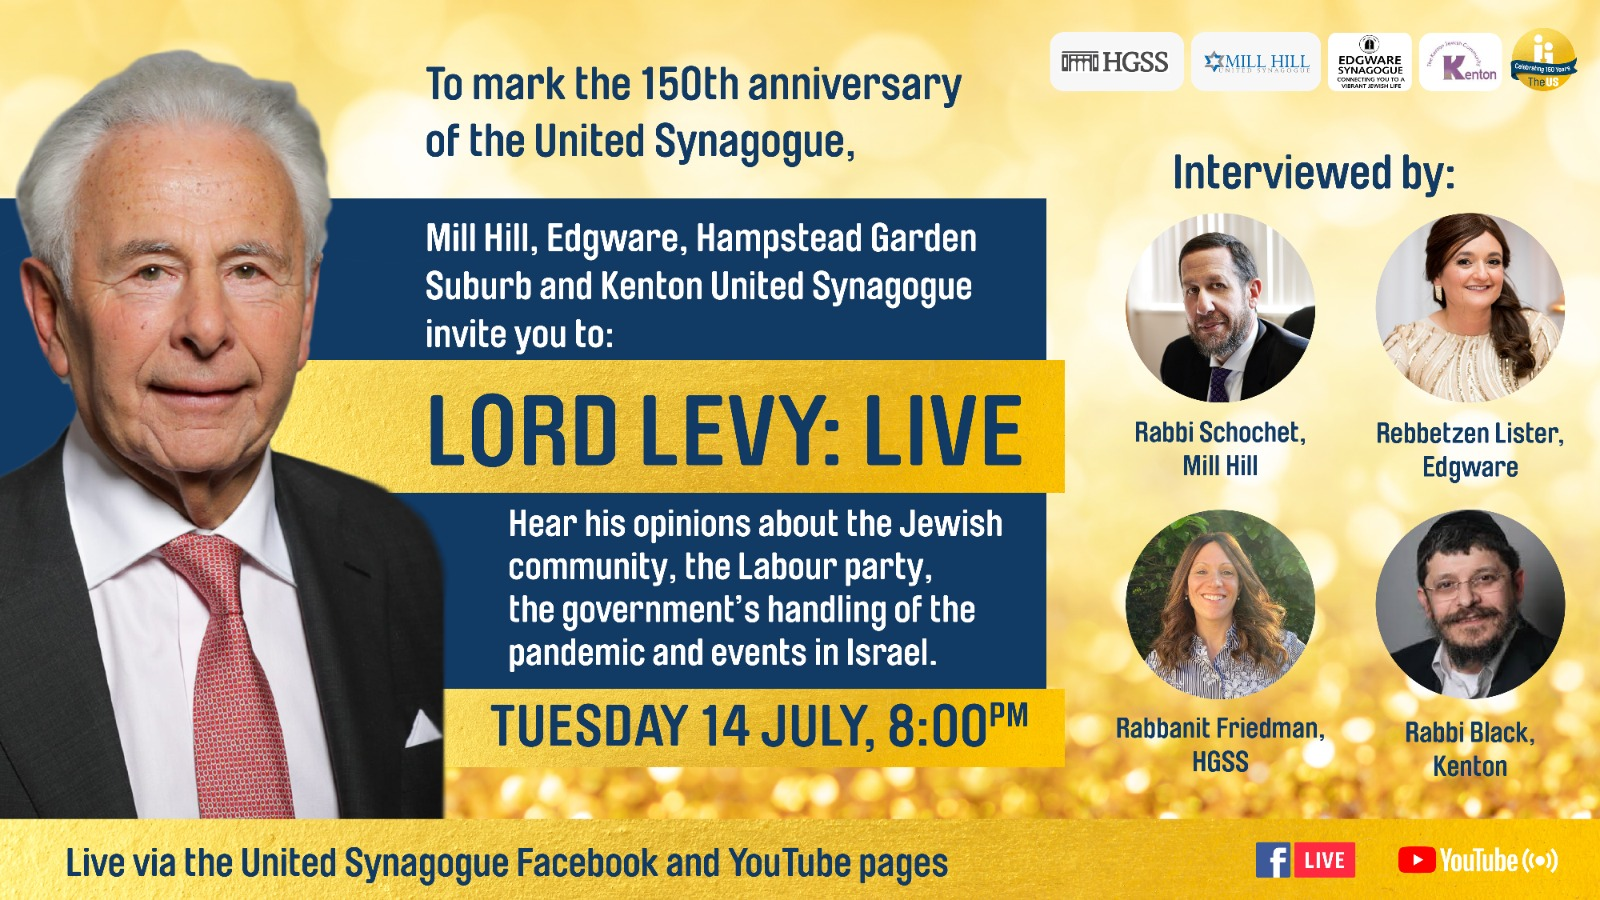 image of Lord Levy